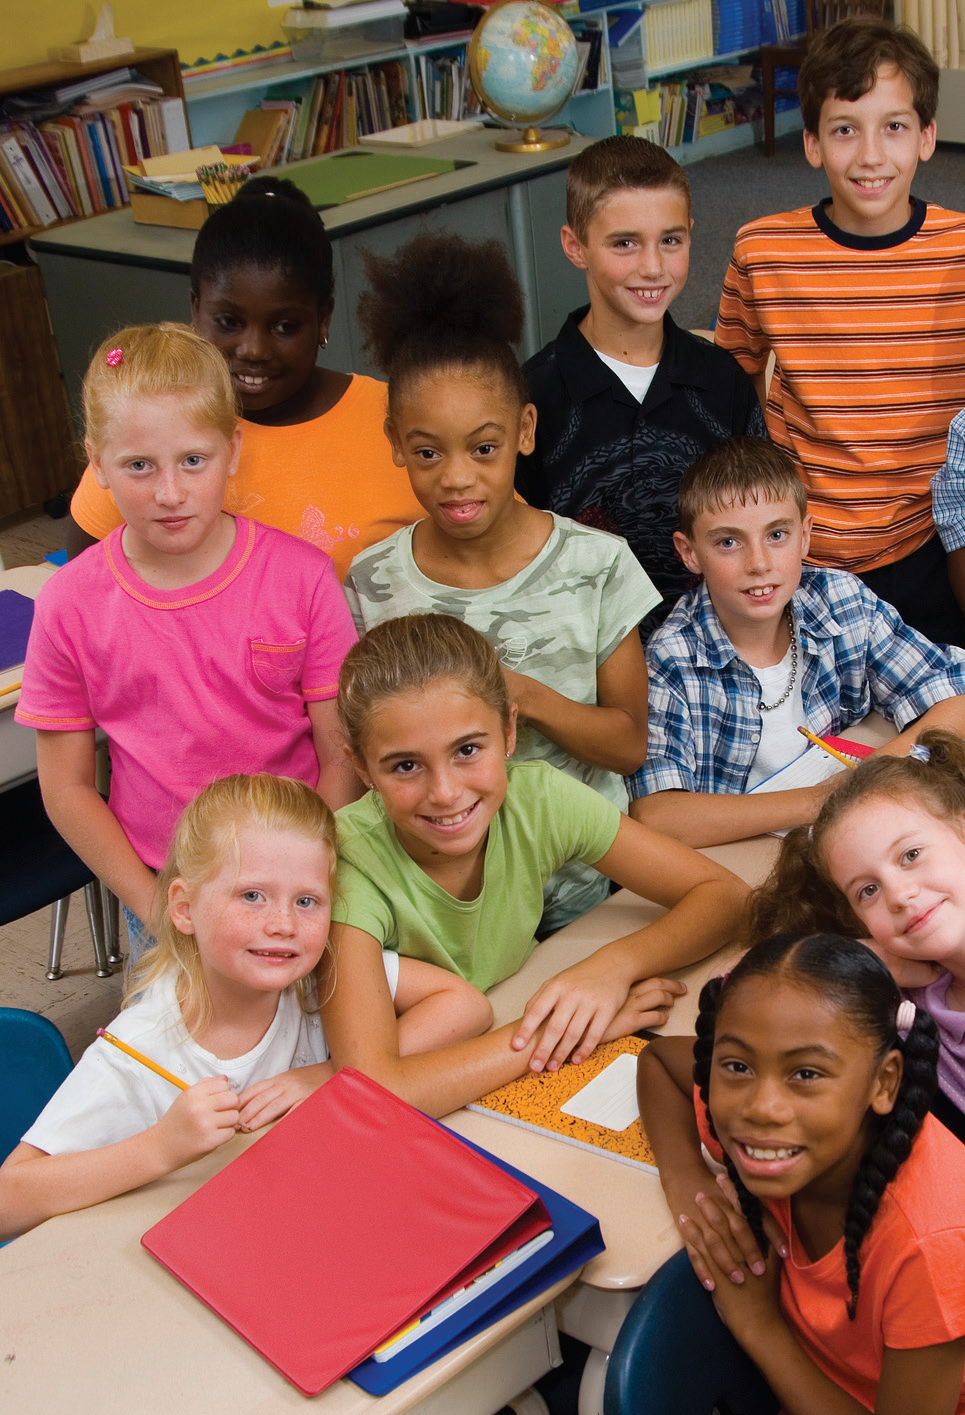 Group of Kids in class room